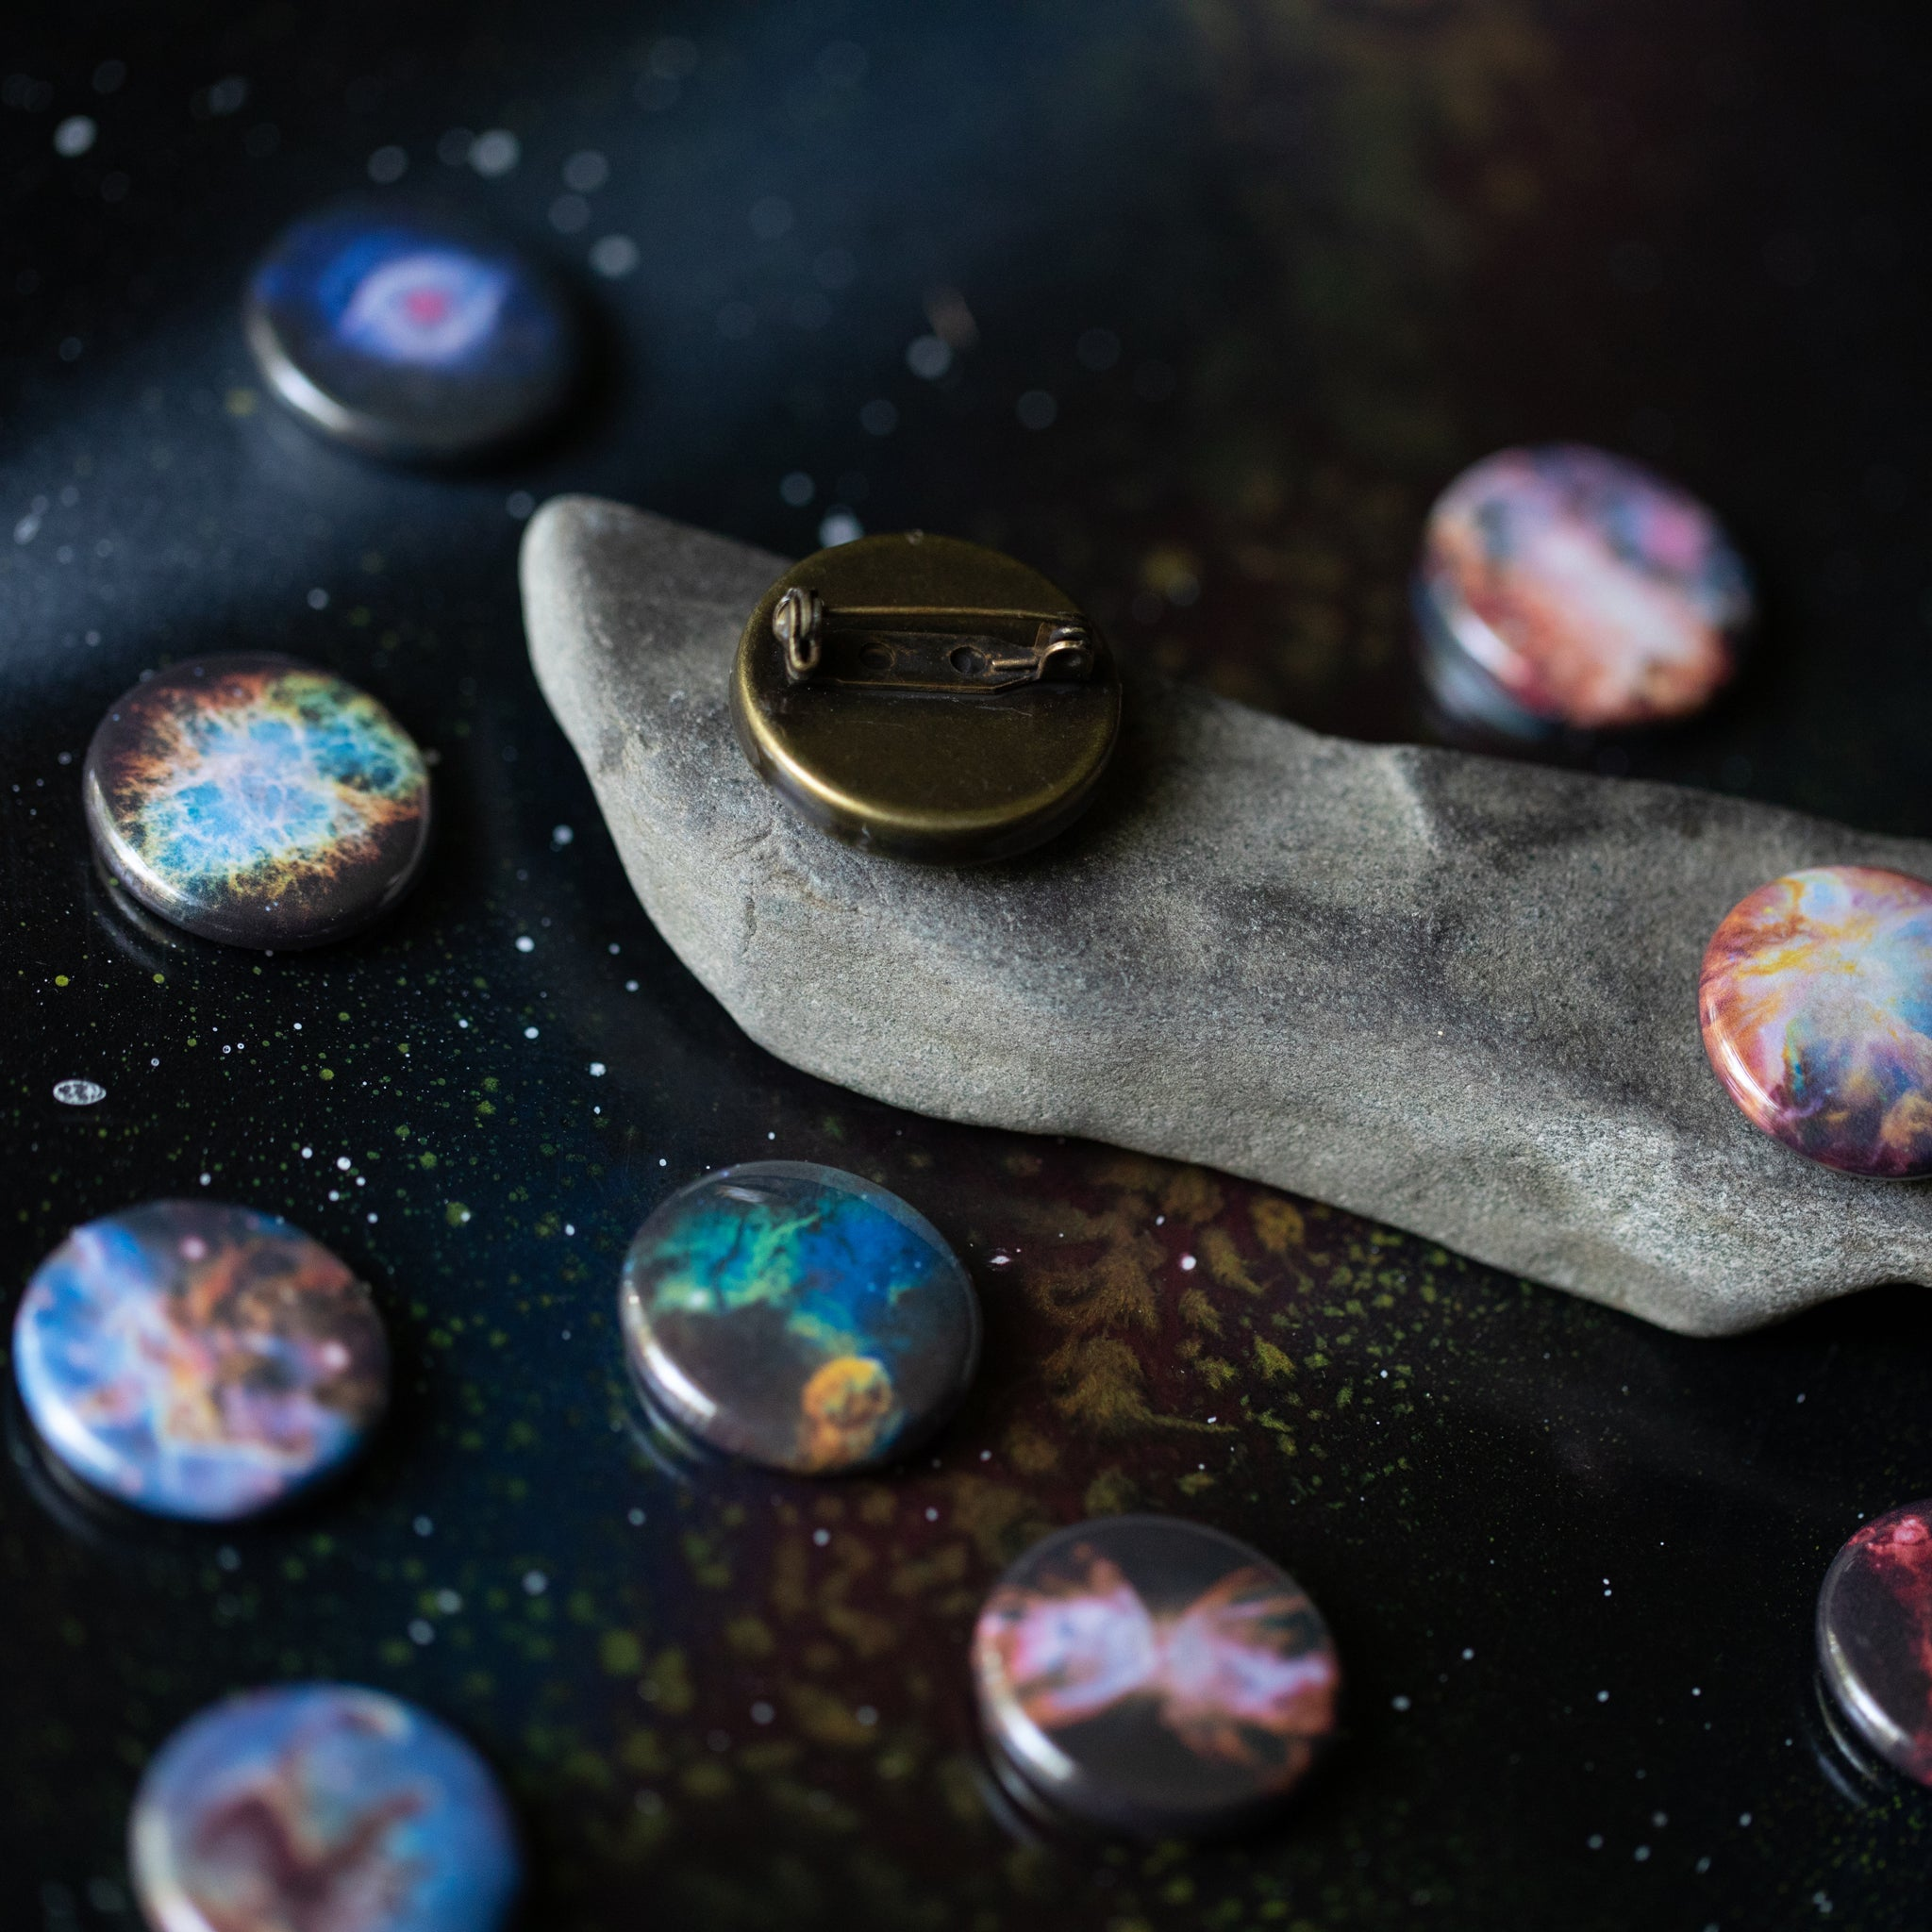 Nebula lapel pin - STEM unisex fashion accessory - Interchangeable brooch with 10 galaxy designs - Outer space cosmic jewelry inspired by the universe and astronomy - handmade by Yugen Tribe